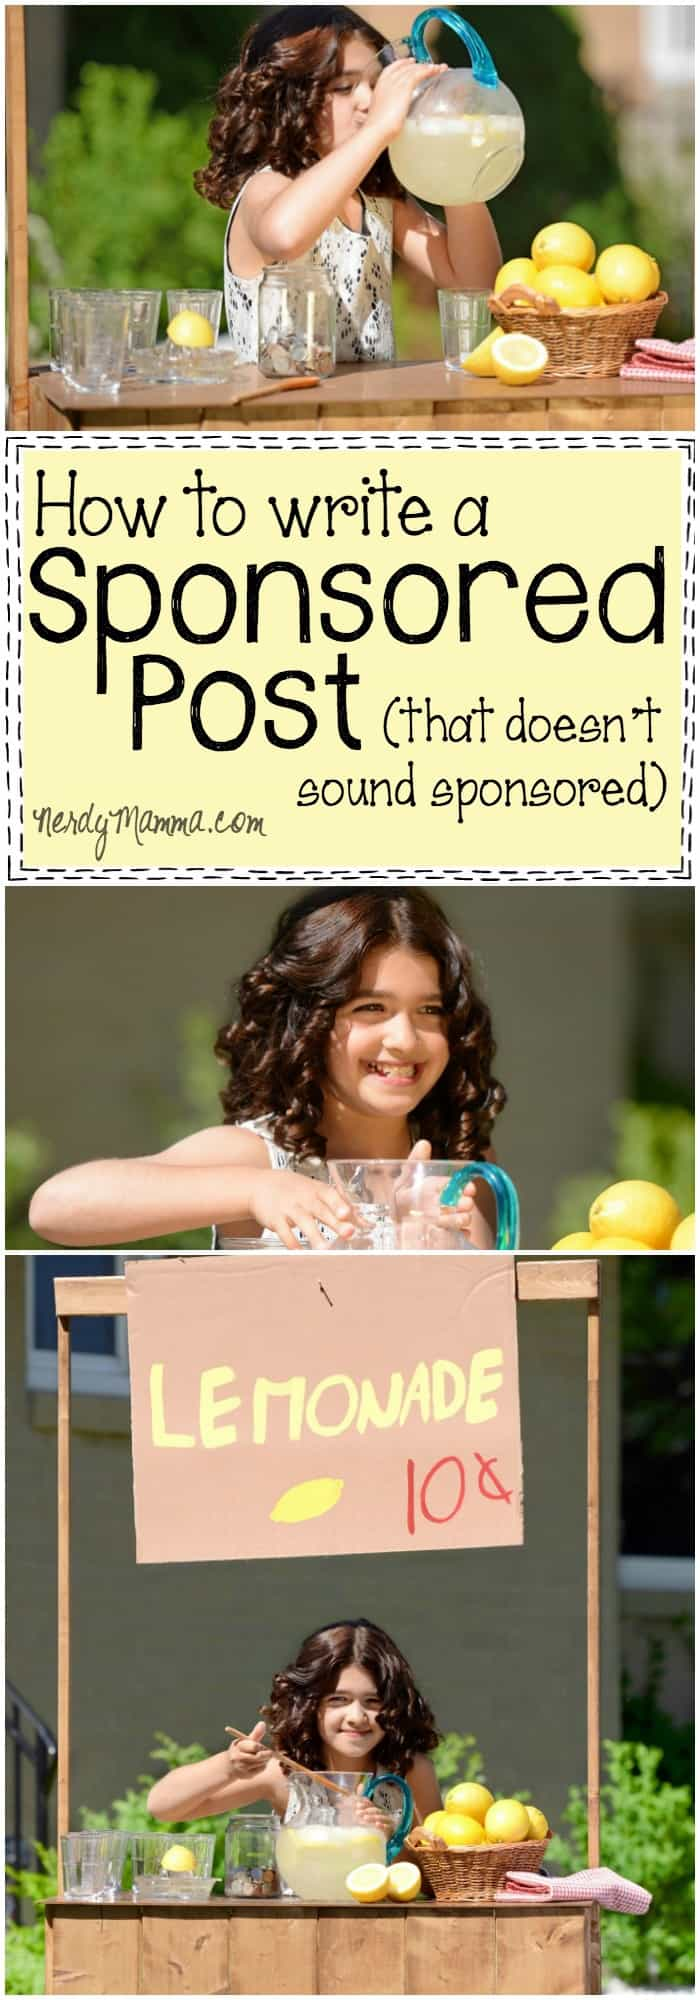 This is such a helpful post on how to write a sponsored post that doesn't sound sponsored--and that sponsors want you to write...